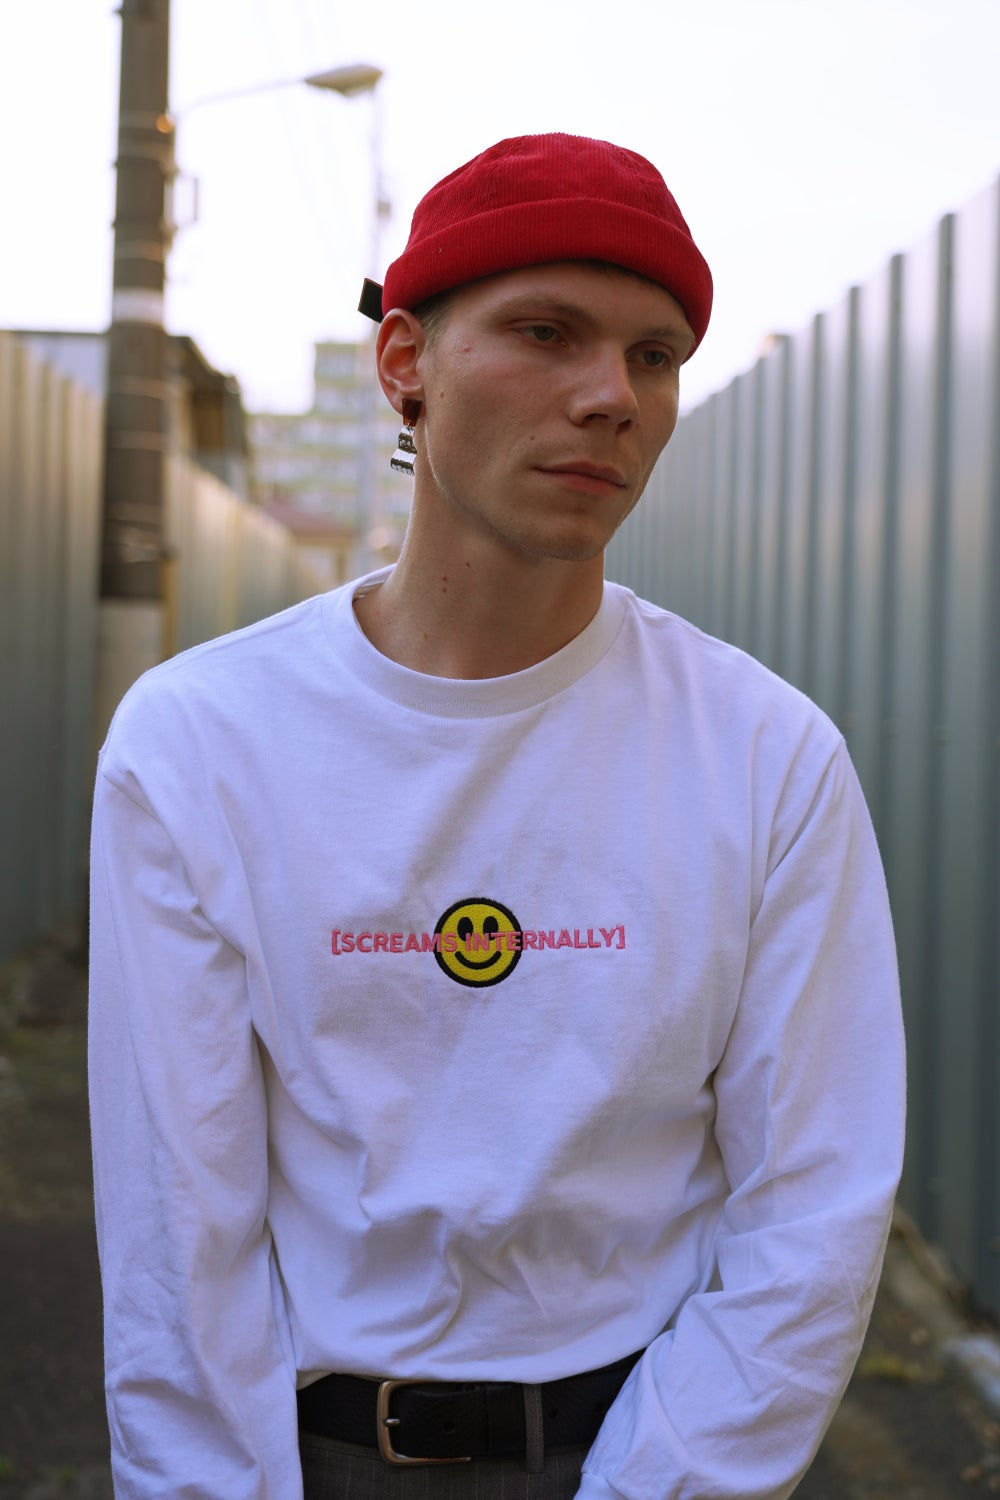 Image of [SCREAMS INTERNALLY] Long Sleeve Tee (White)